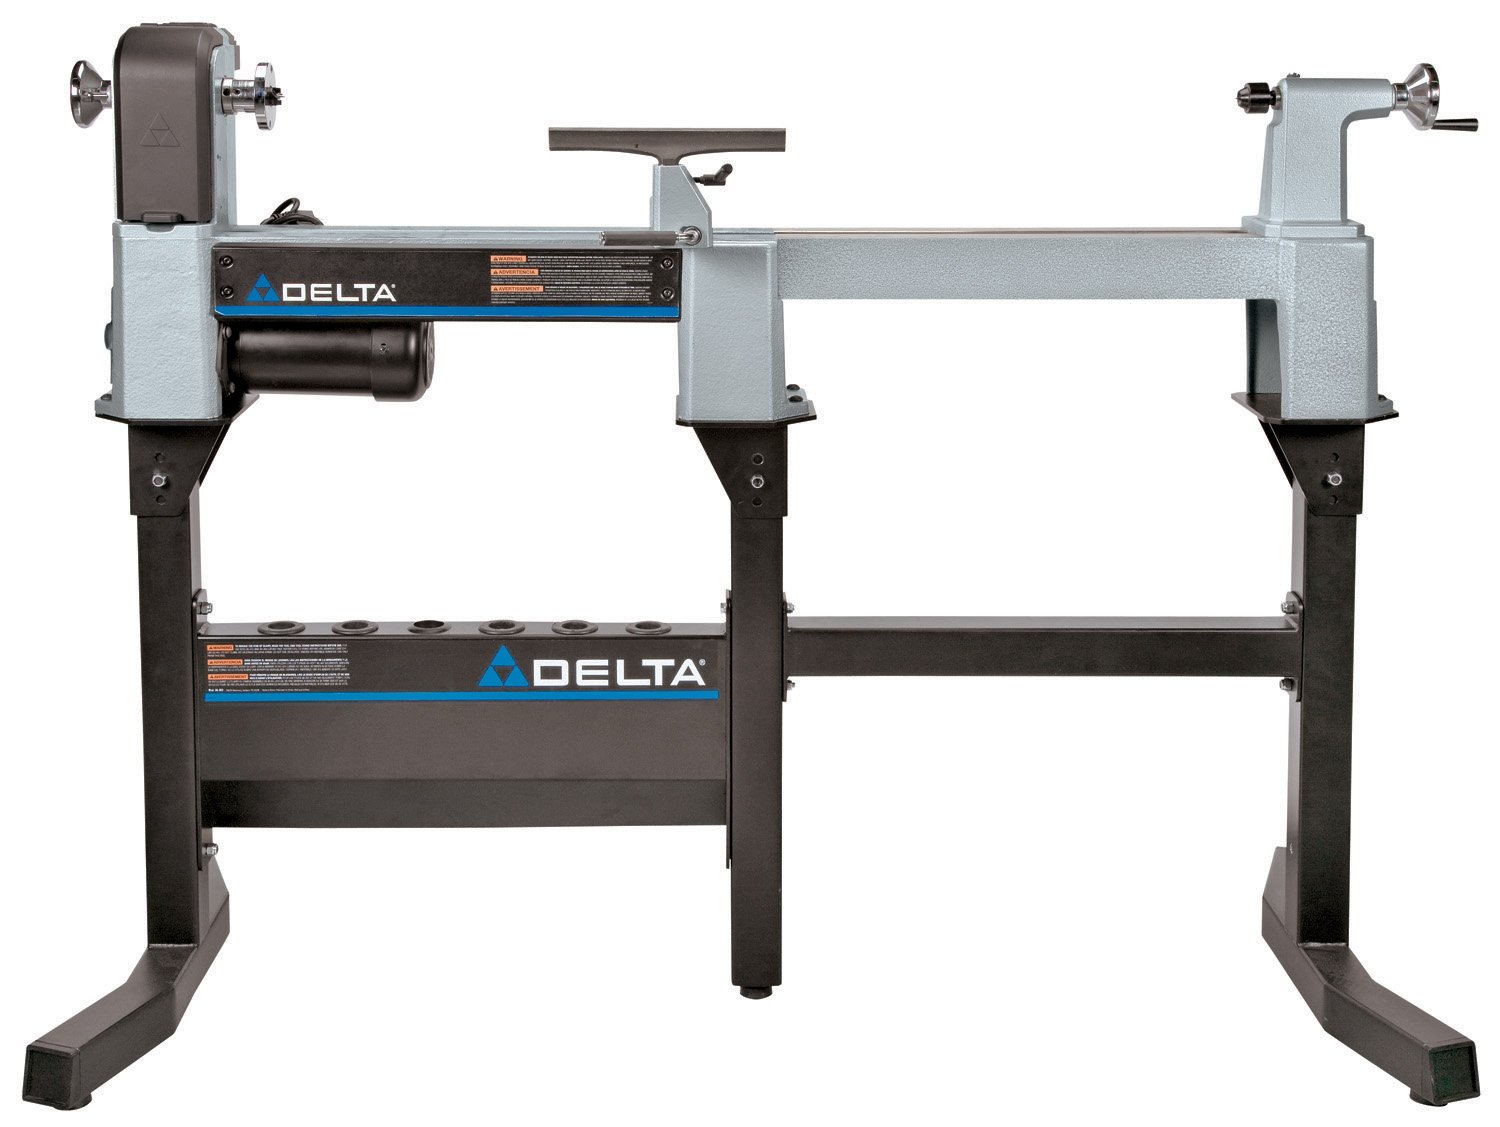 Delta Industrial 46-464 Midi-Lathe Modular Stand Extension by Delta